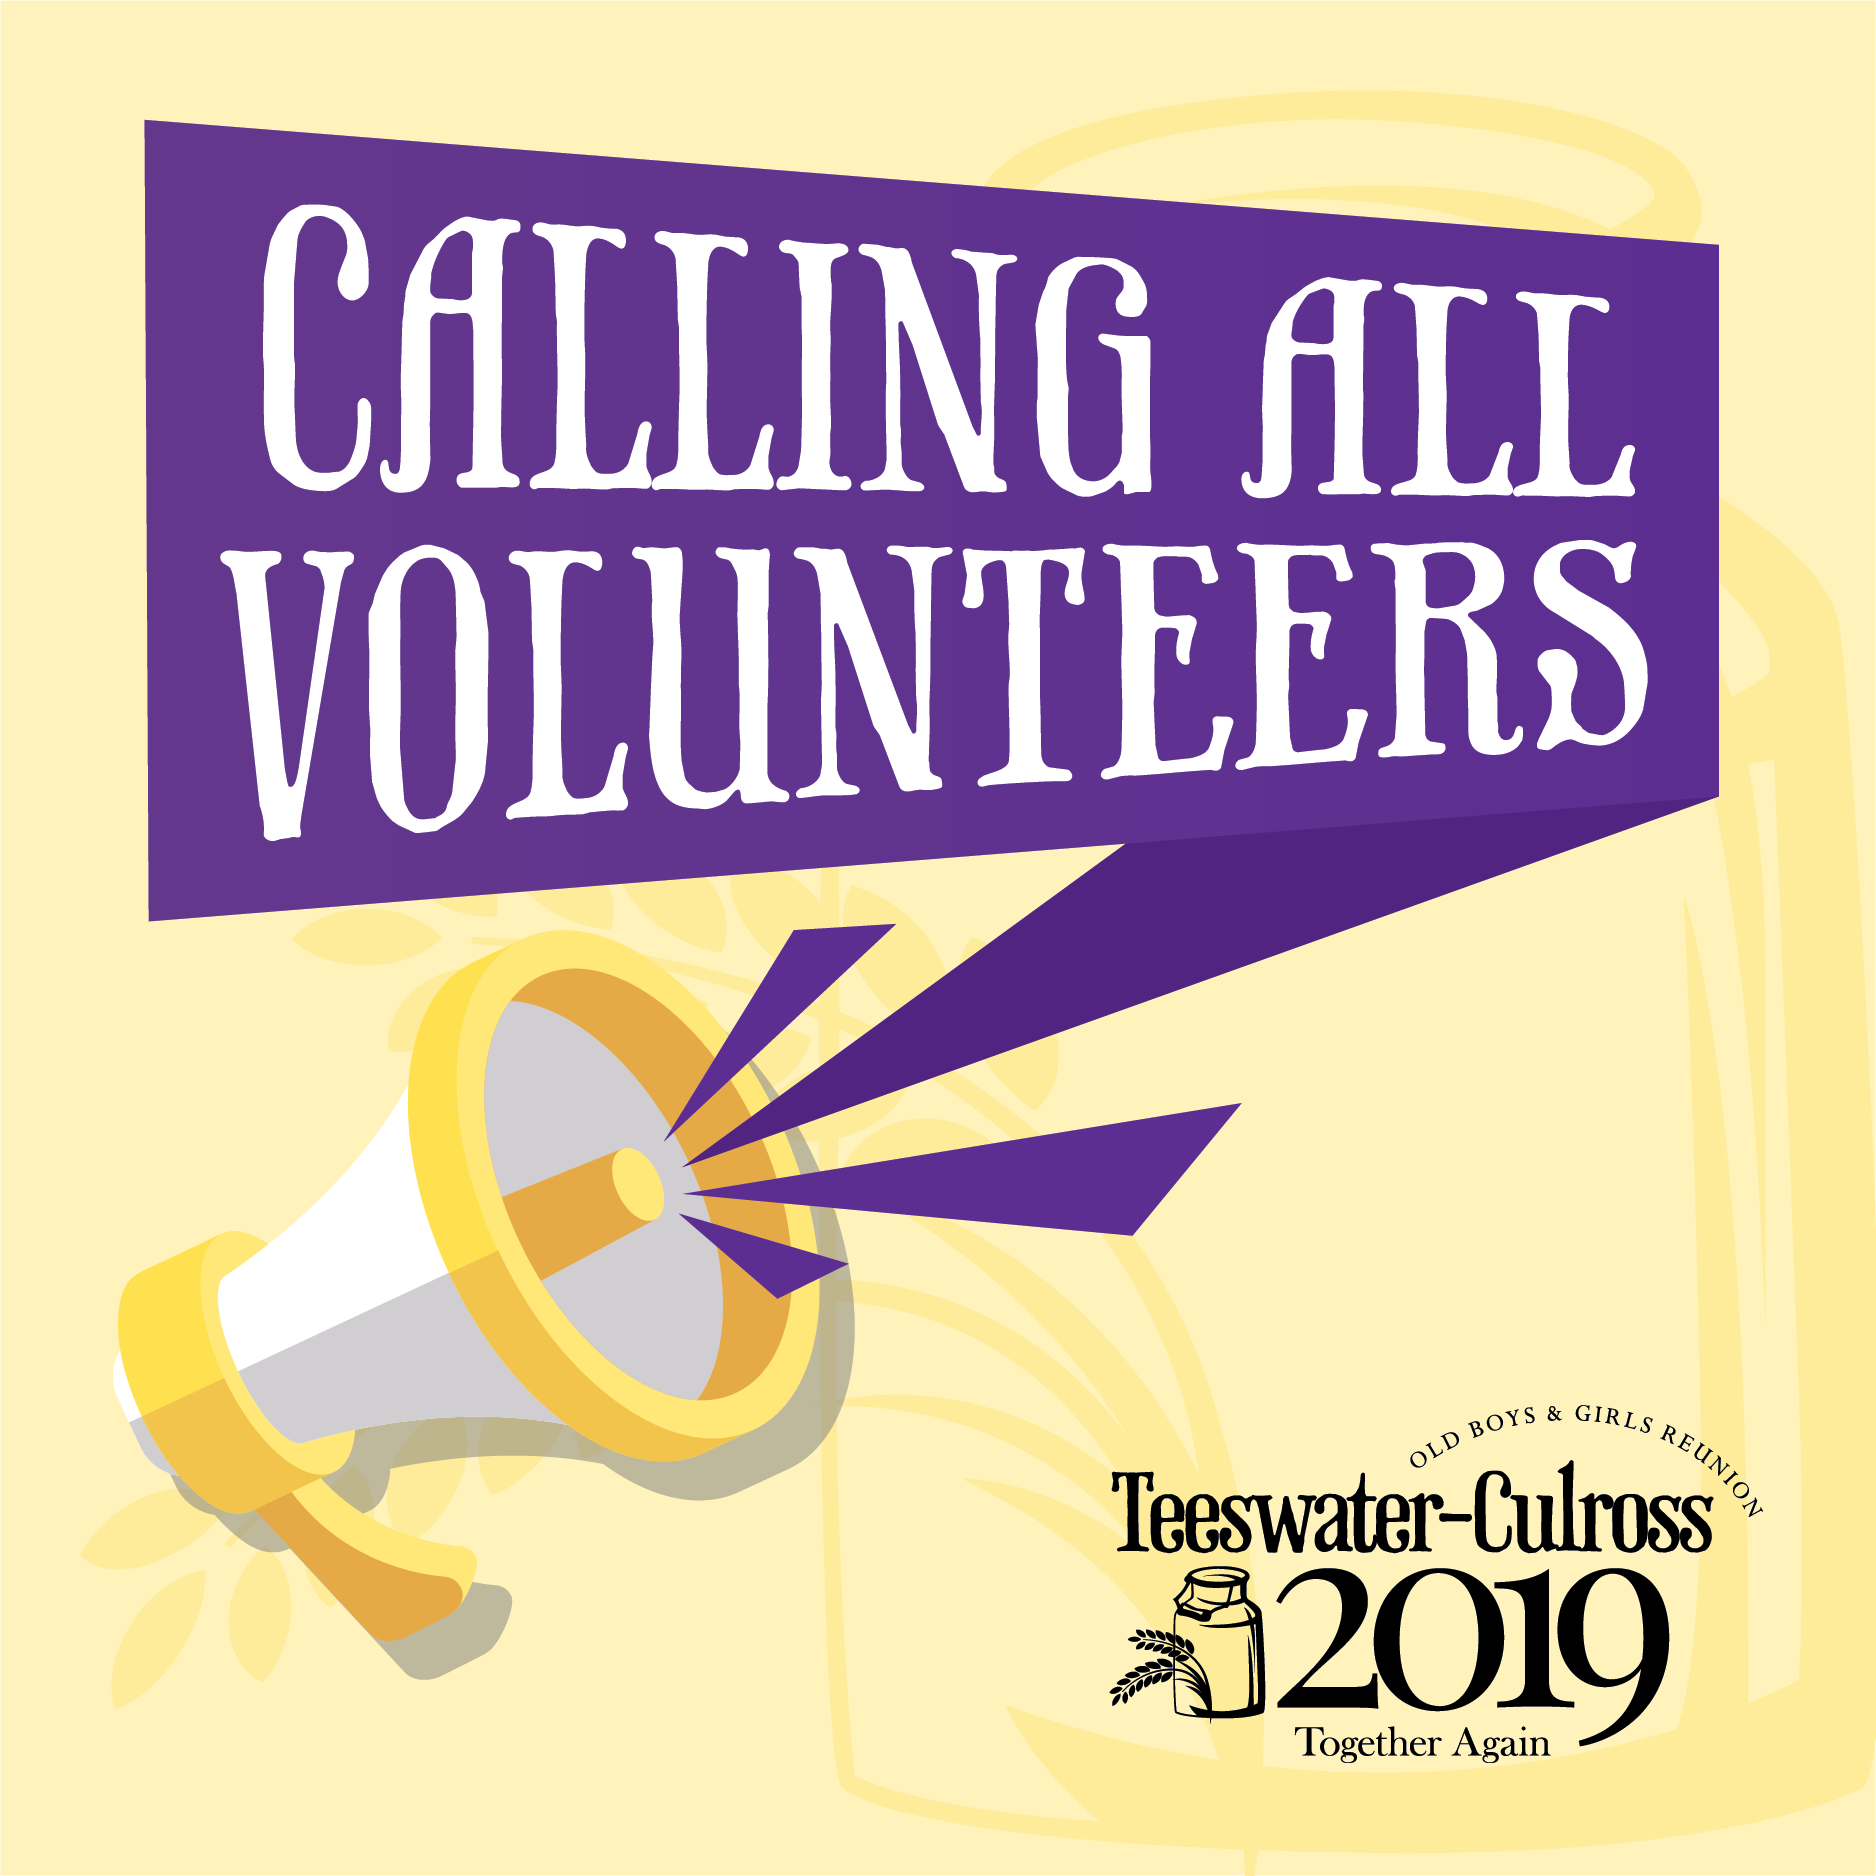 TeeswaterReunion_CallingVolunteer_Graphic-01